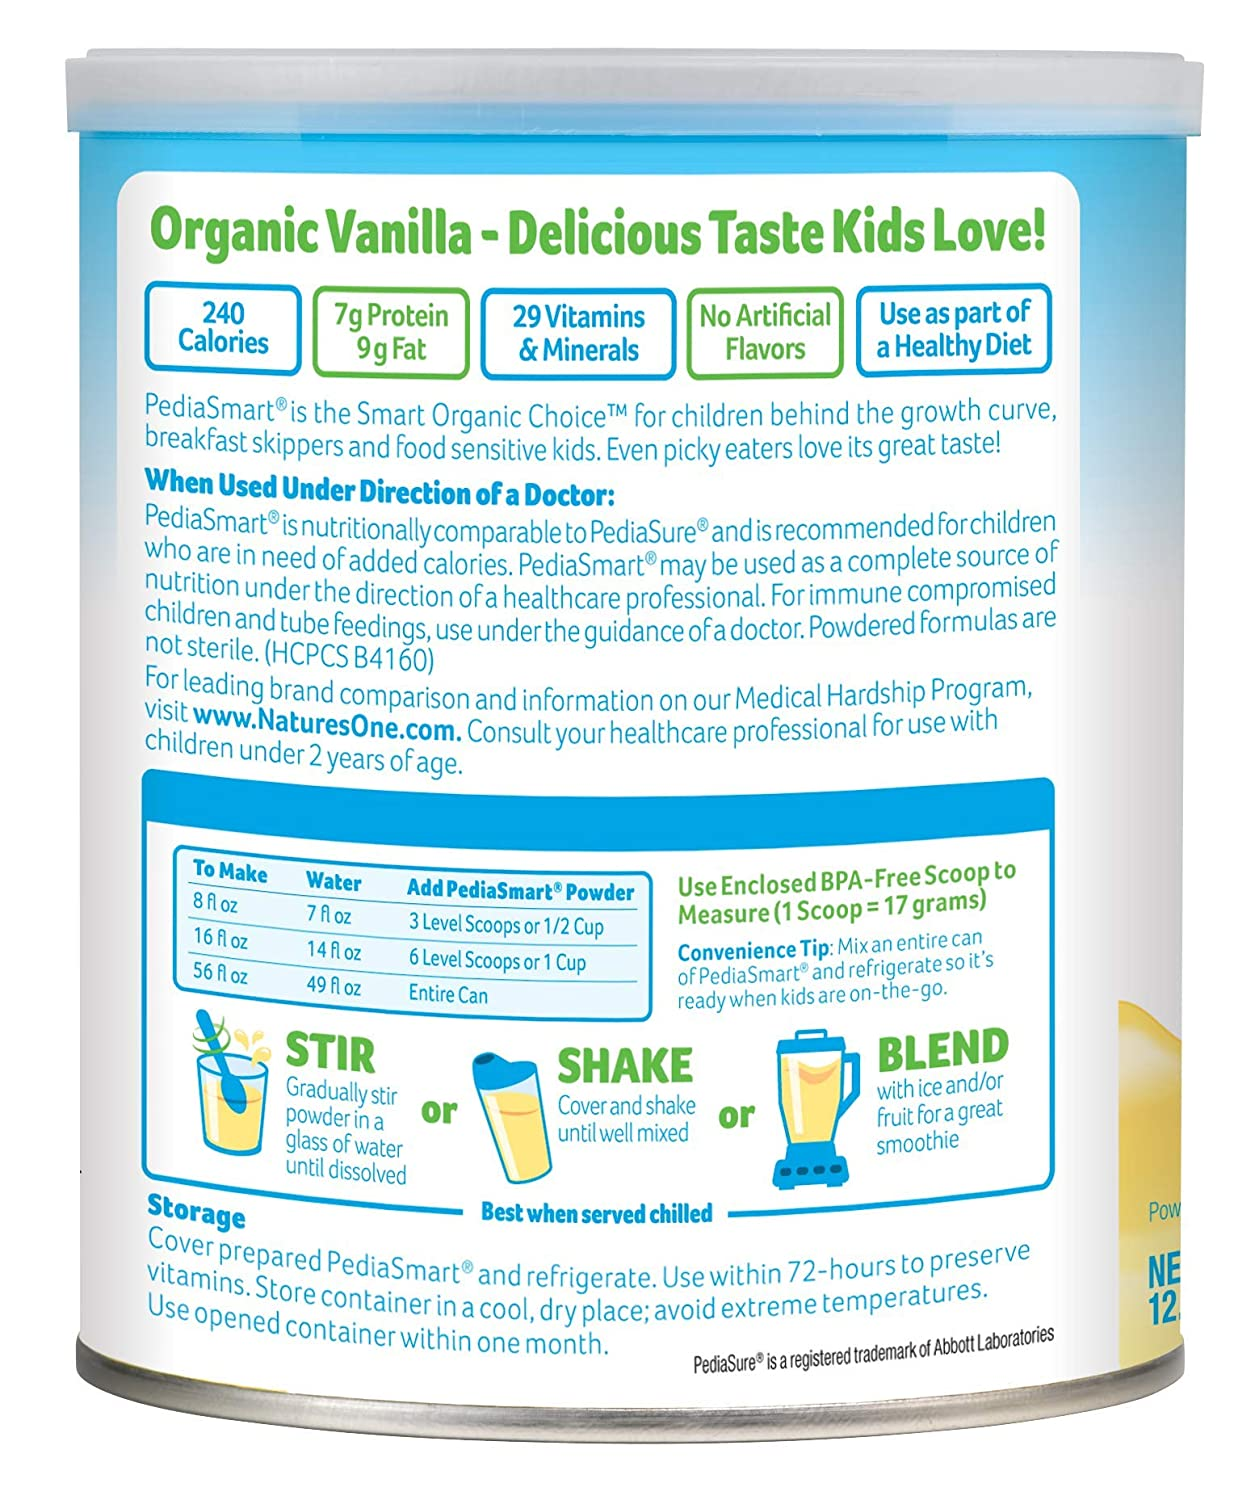 Amazon.com : PediaSmart Organic Non-GMO Soy Vanilla Complete Nutrition Beverage Powder, 12.7 oz (Pack of 6) : Grocery & Gourmet Food